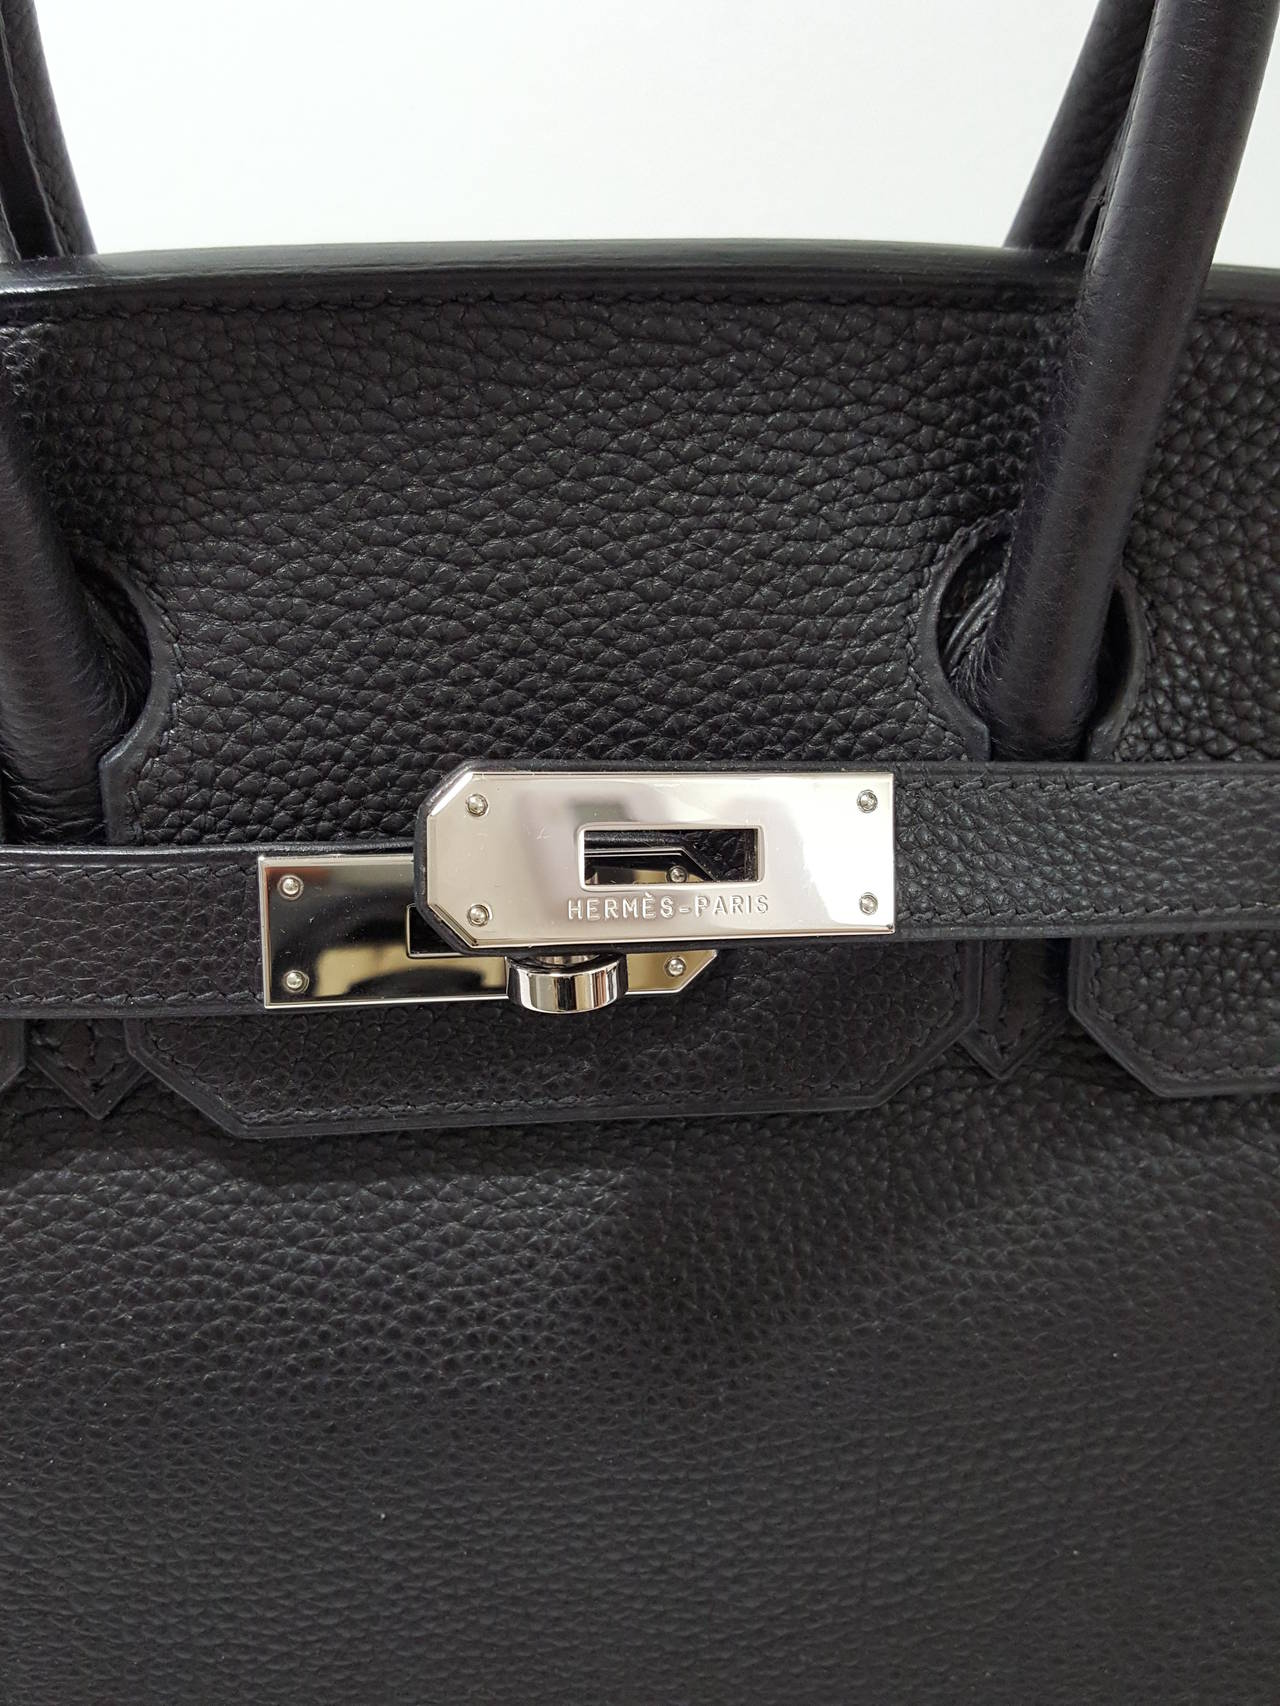 hermes hand bags - HERMES Birkin 30cm Black with Palladium Hardware in Togo Leather ...